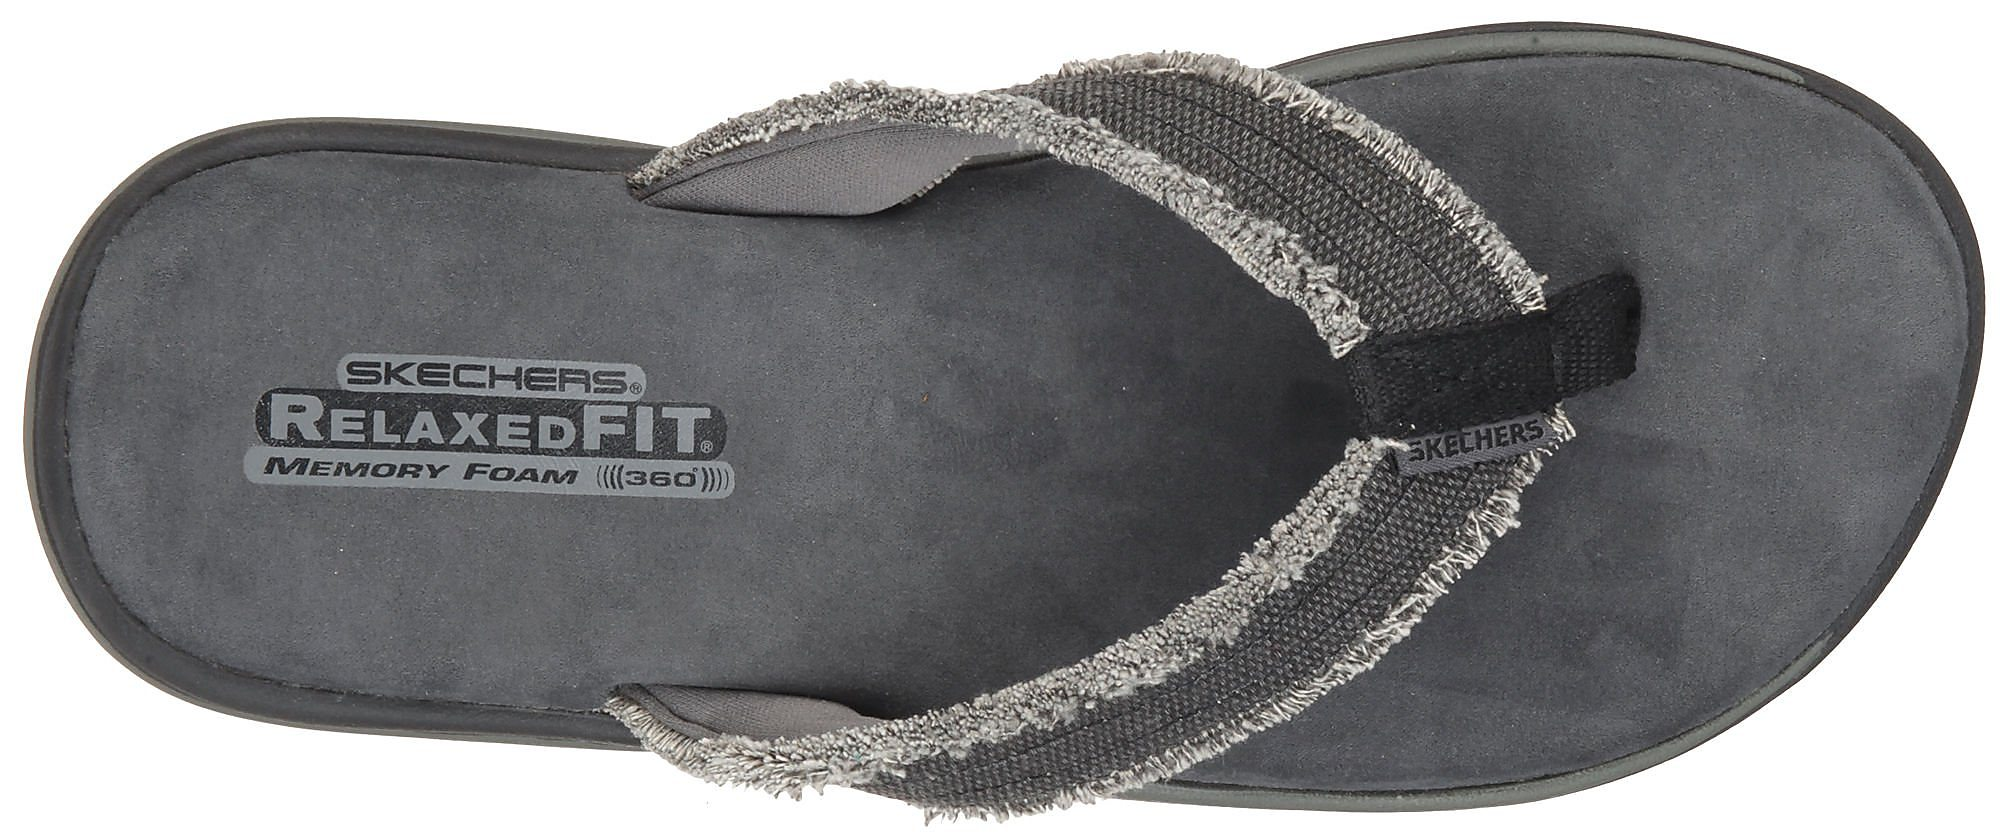 e26277a6477ac3 SKECHERS Mens Supreme Bosnia Thong Sandals 8m Nylon Black. About this  product. Picture 1 of 4  Picture 2 of 4  Picture 3 of 4 ...